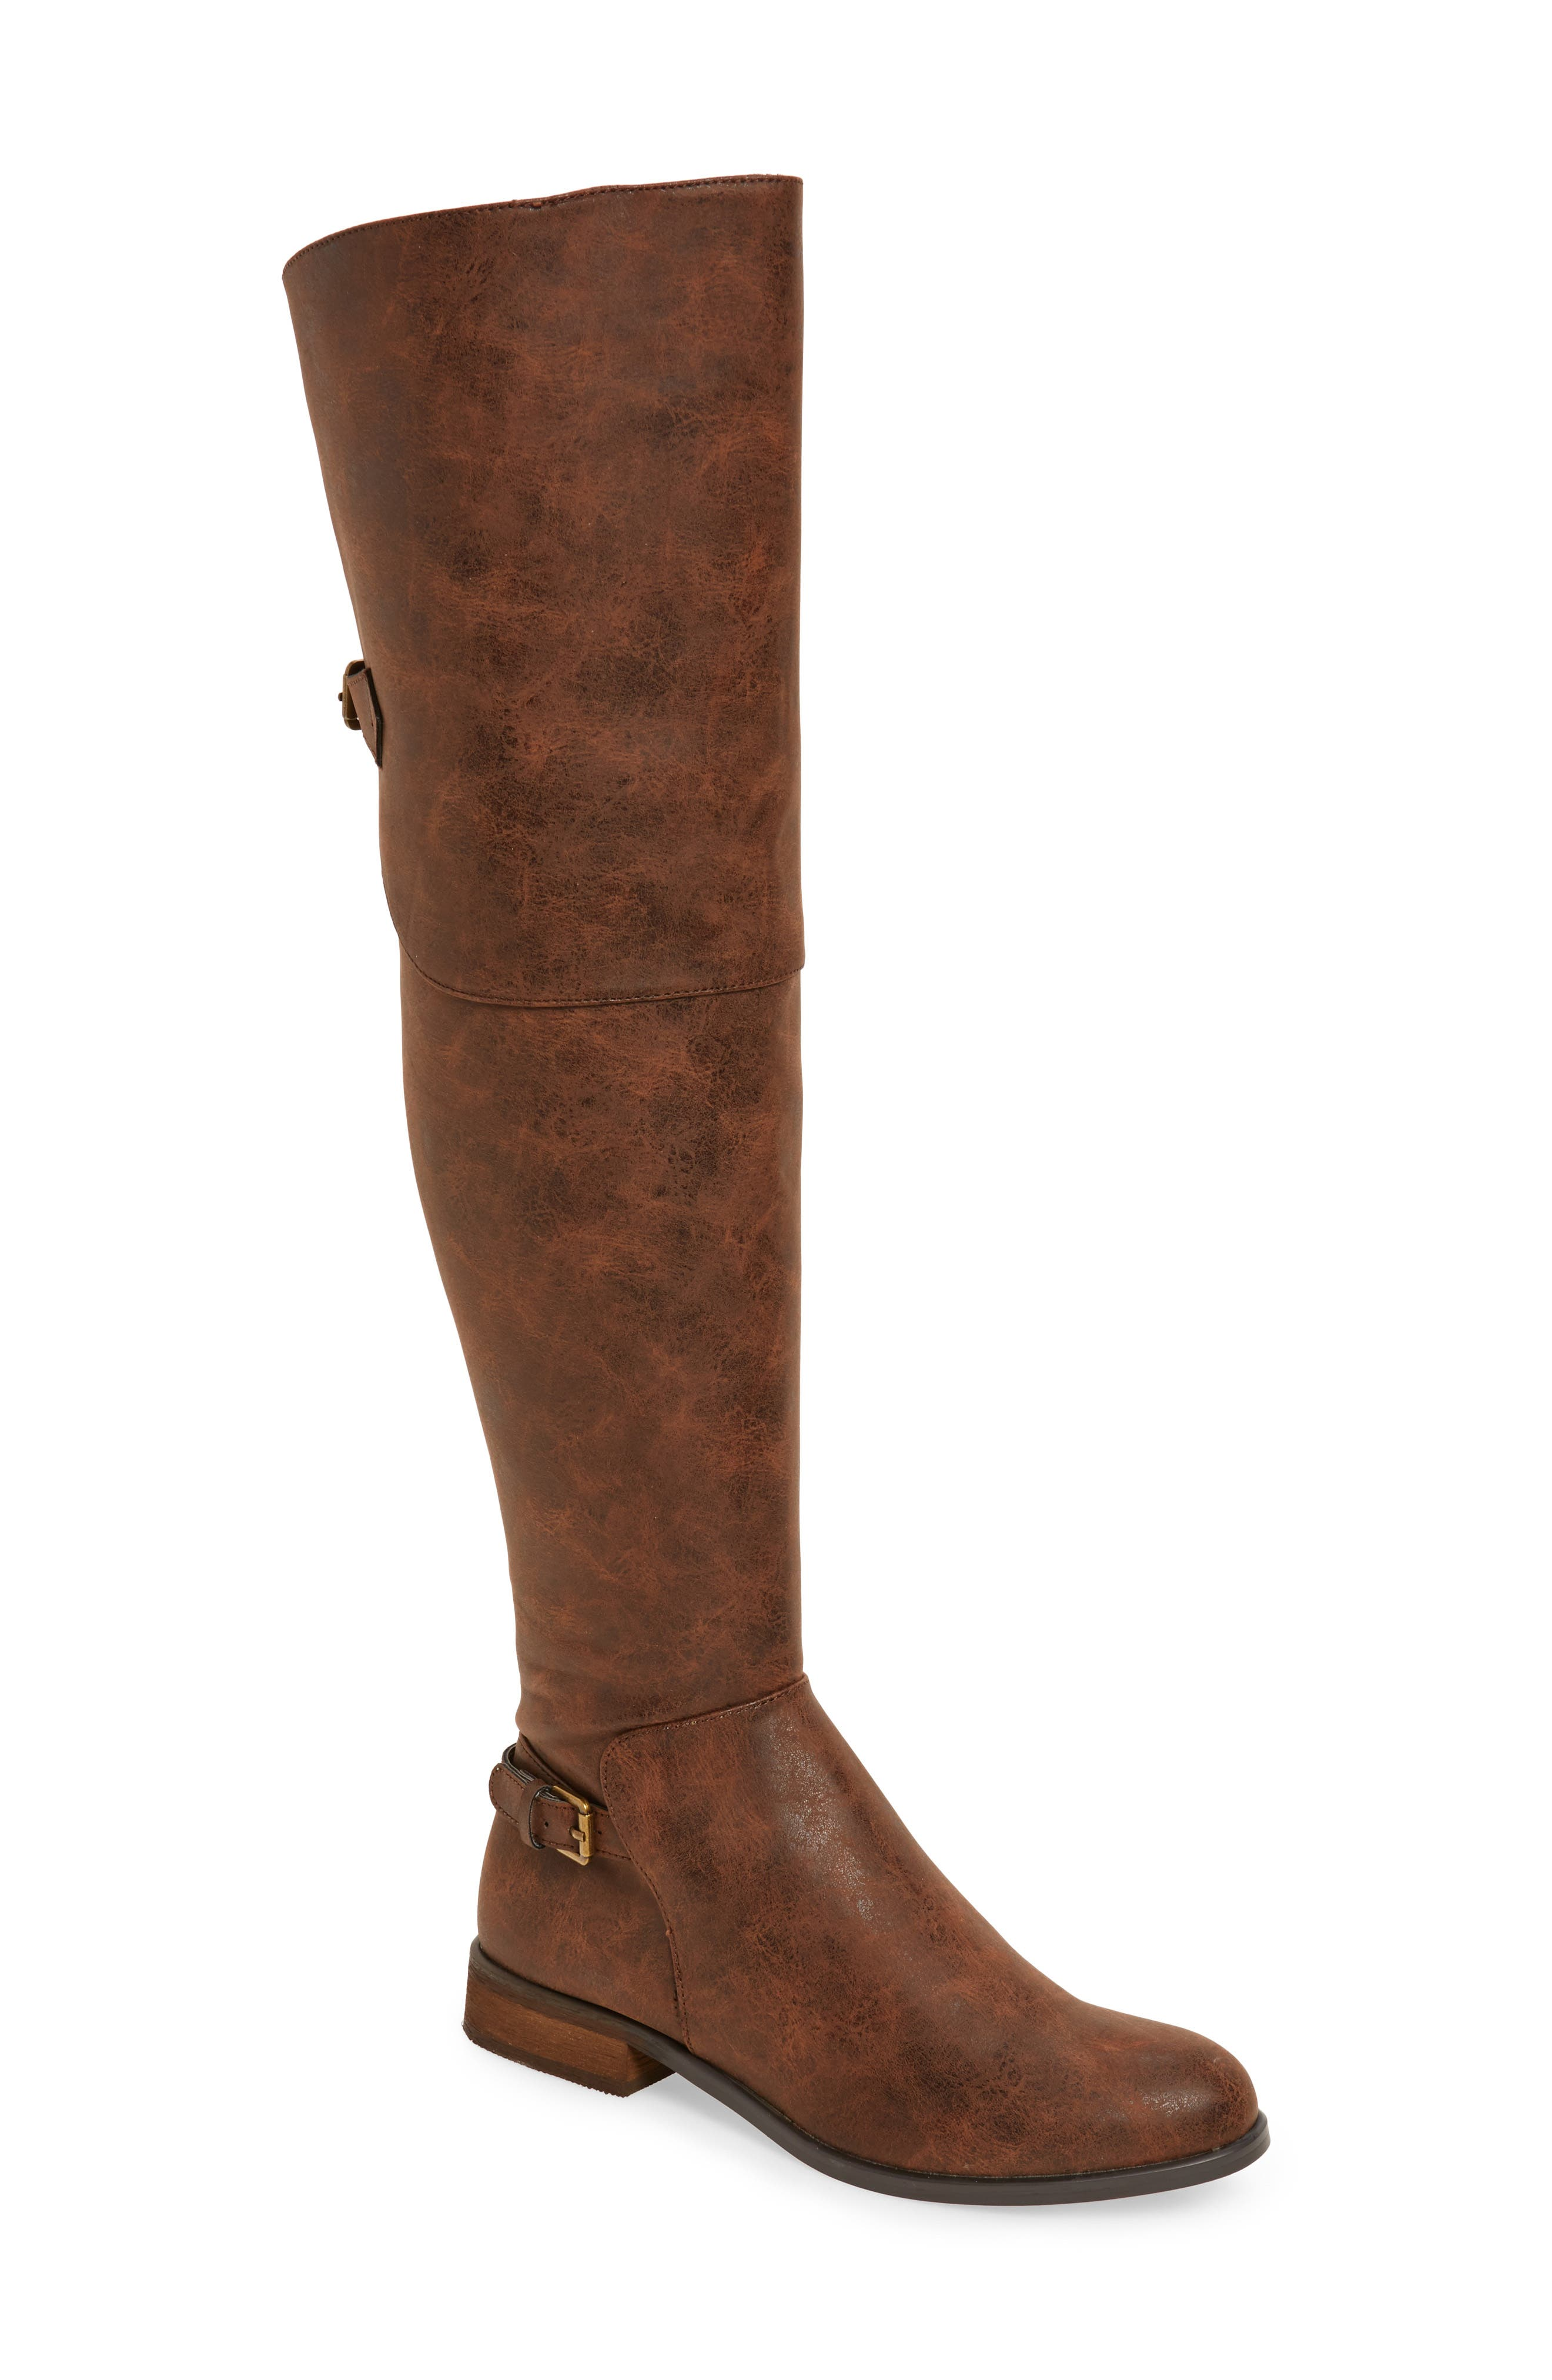 Alternate Image 1 Selected - Very Volatile Otto Over the Knee Boot (Women)